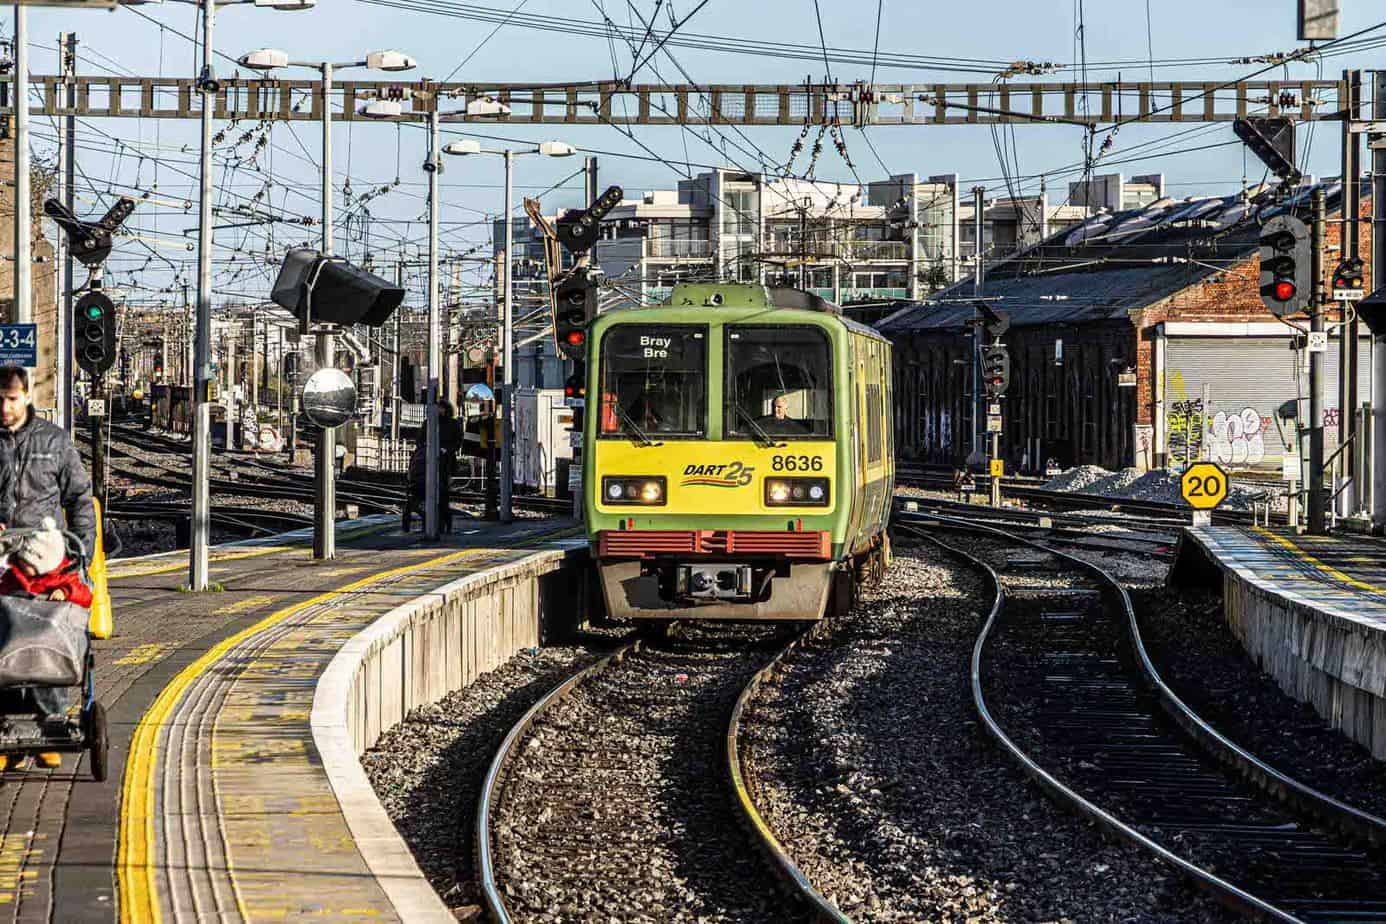 CONNELLY-STATION-REPROCESSED-IMAGES-FROM-DECEMBER-2014-159203-1